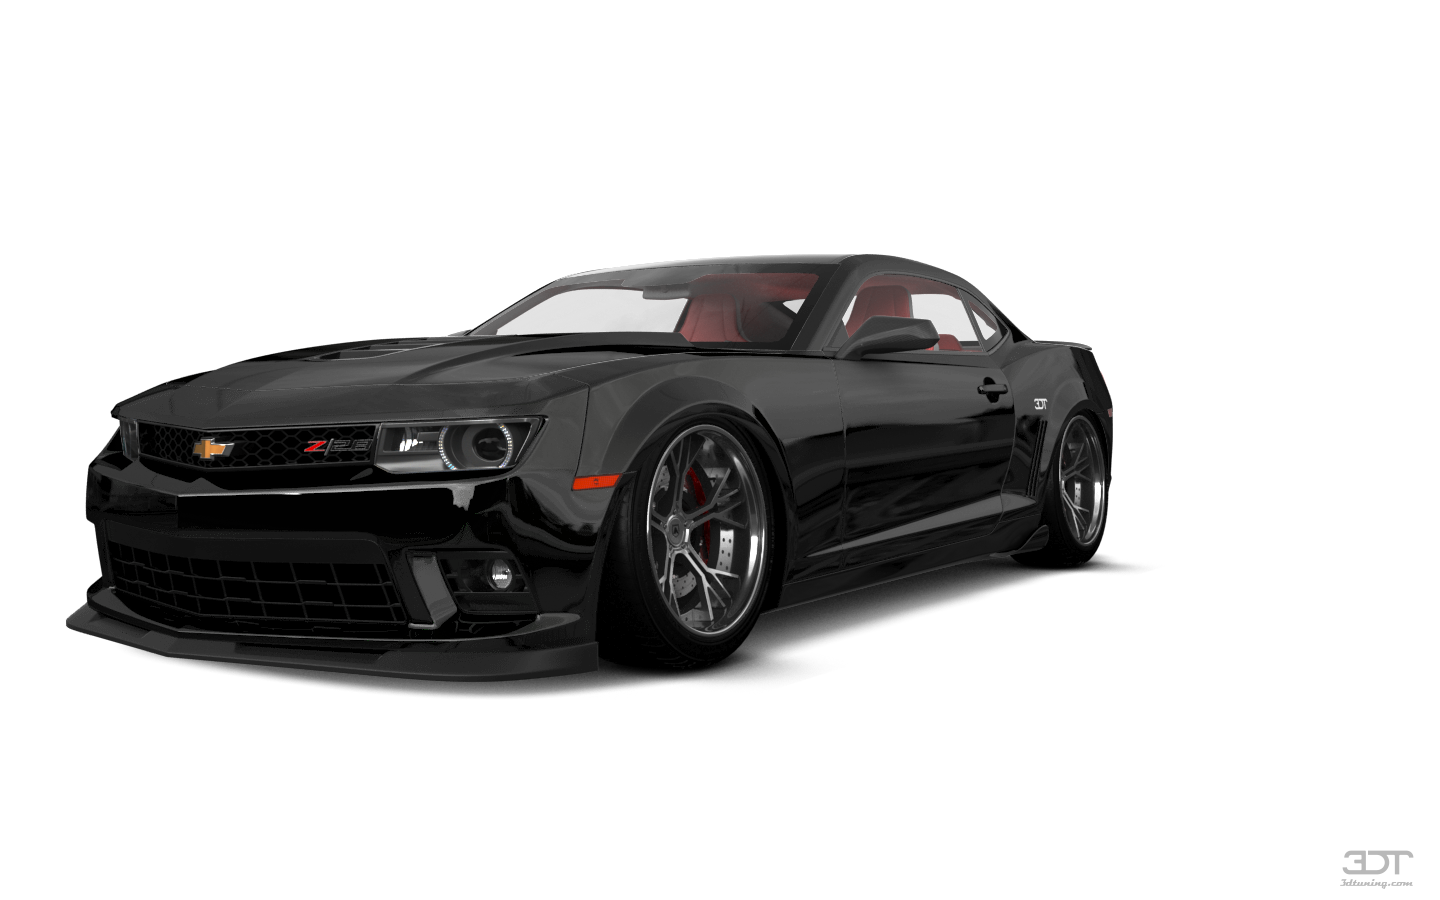 Chevrolet Camaro 2 Door Coupe 2014 tuning